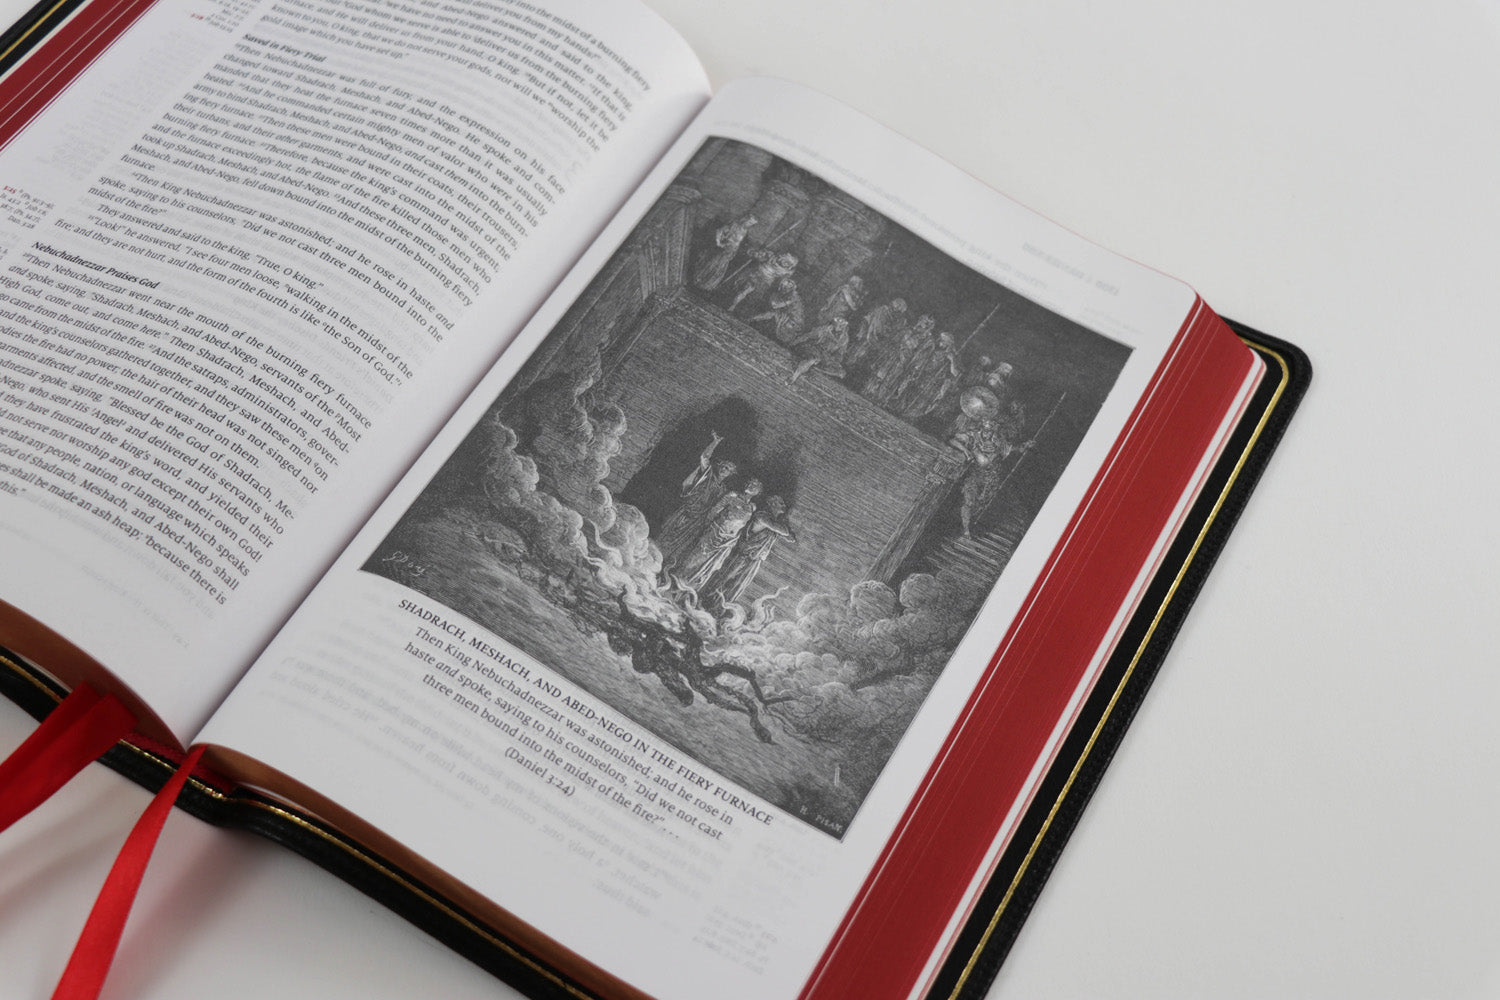 Word of God - Cardinal Red Edition - Premium Bible with illustrations from Gustave Dore